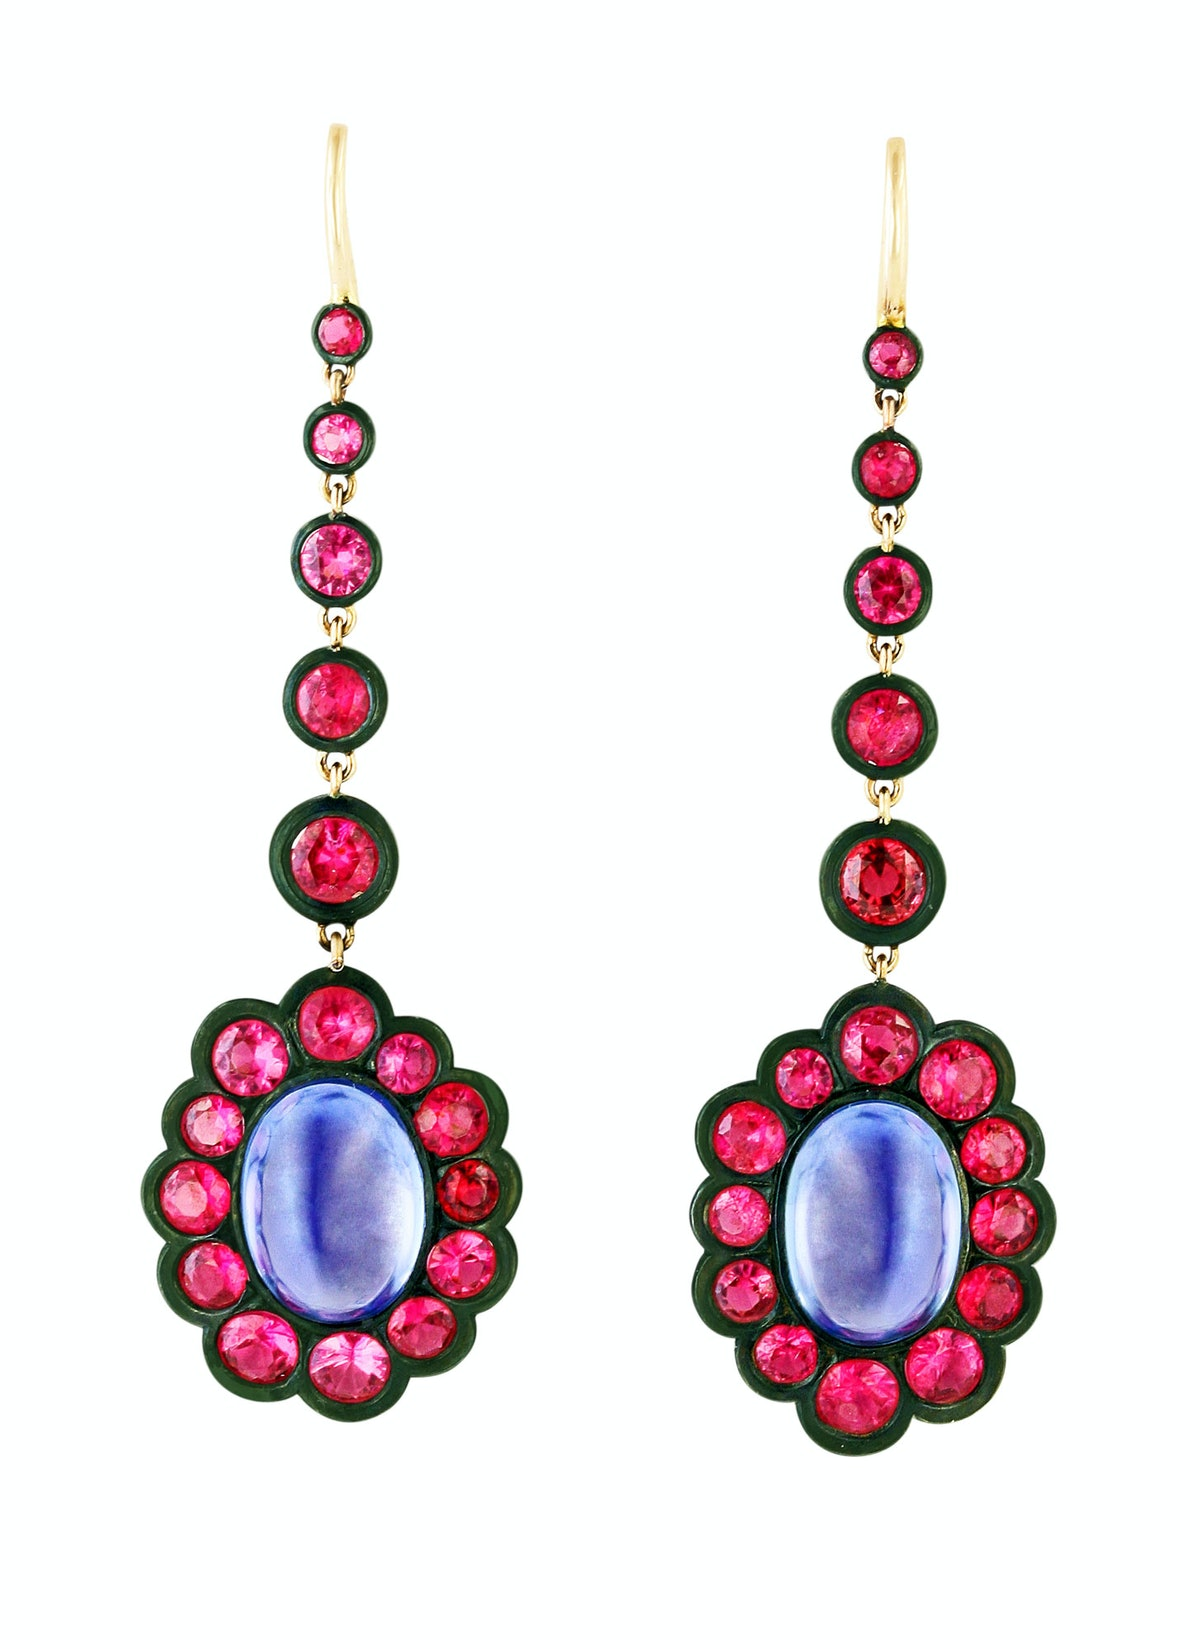 James de Givenchy for Taffin gold, steel, sapphire, and spinel earrings, $50,000, by appointment, Ta...